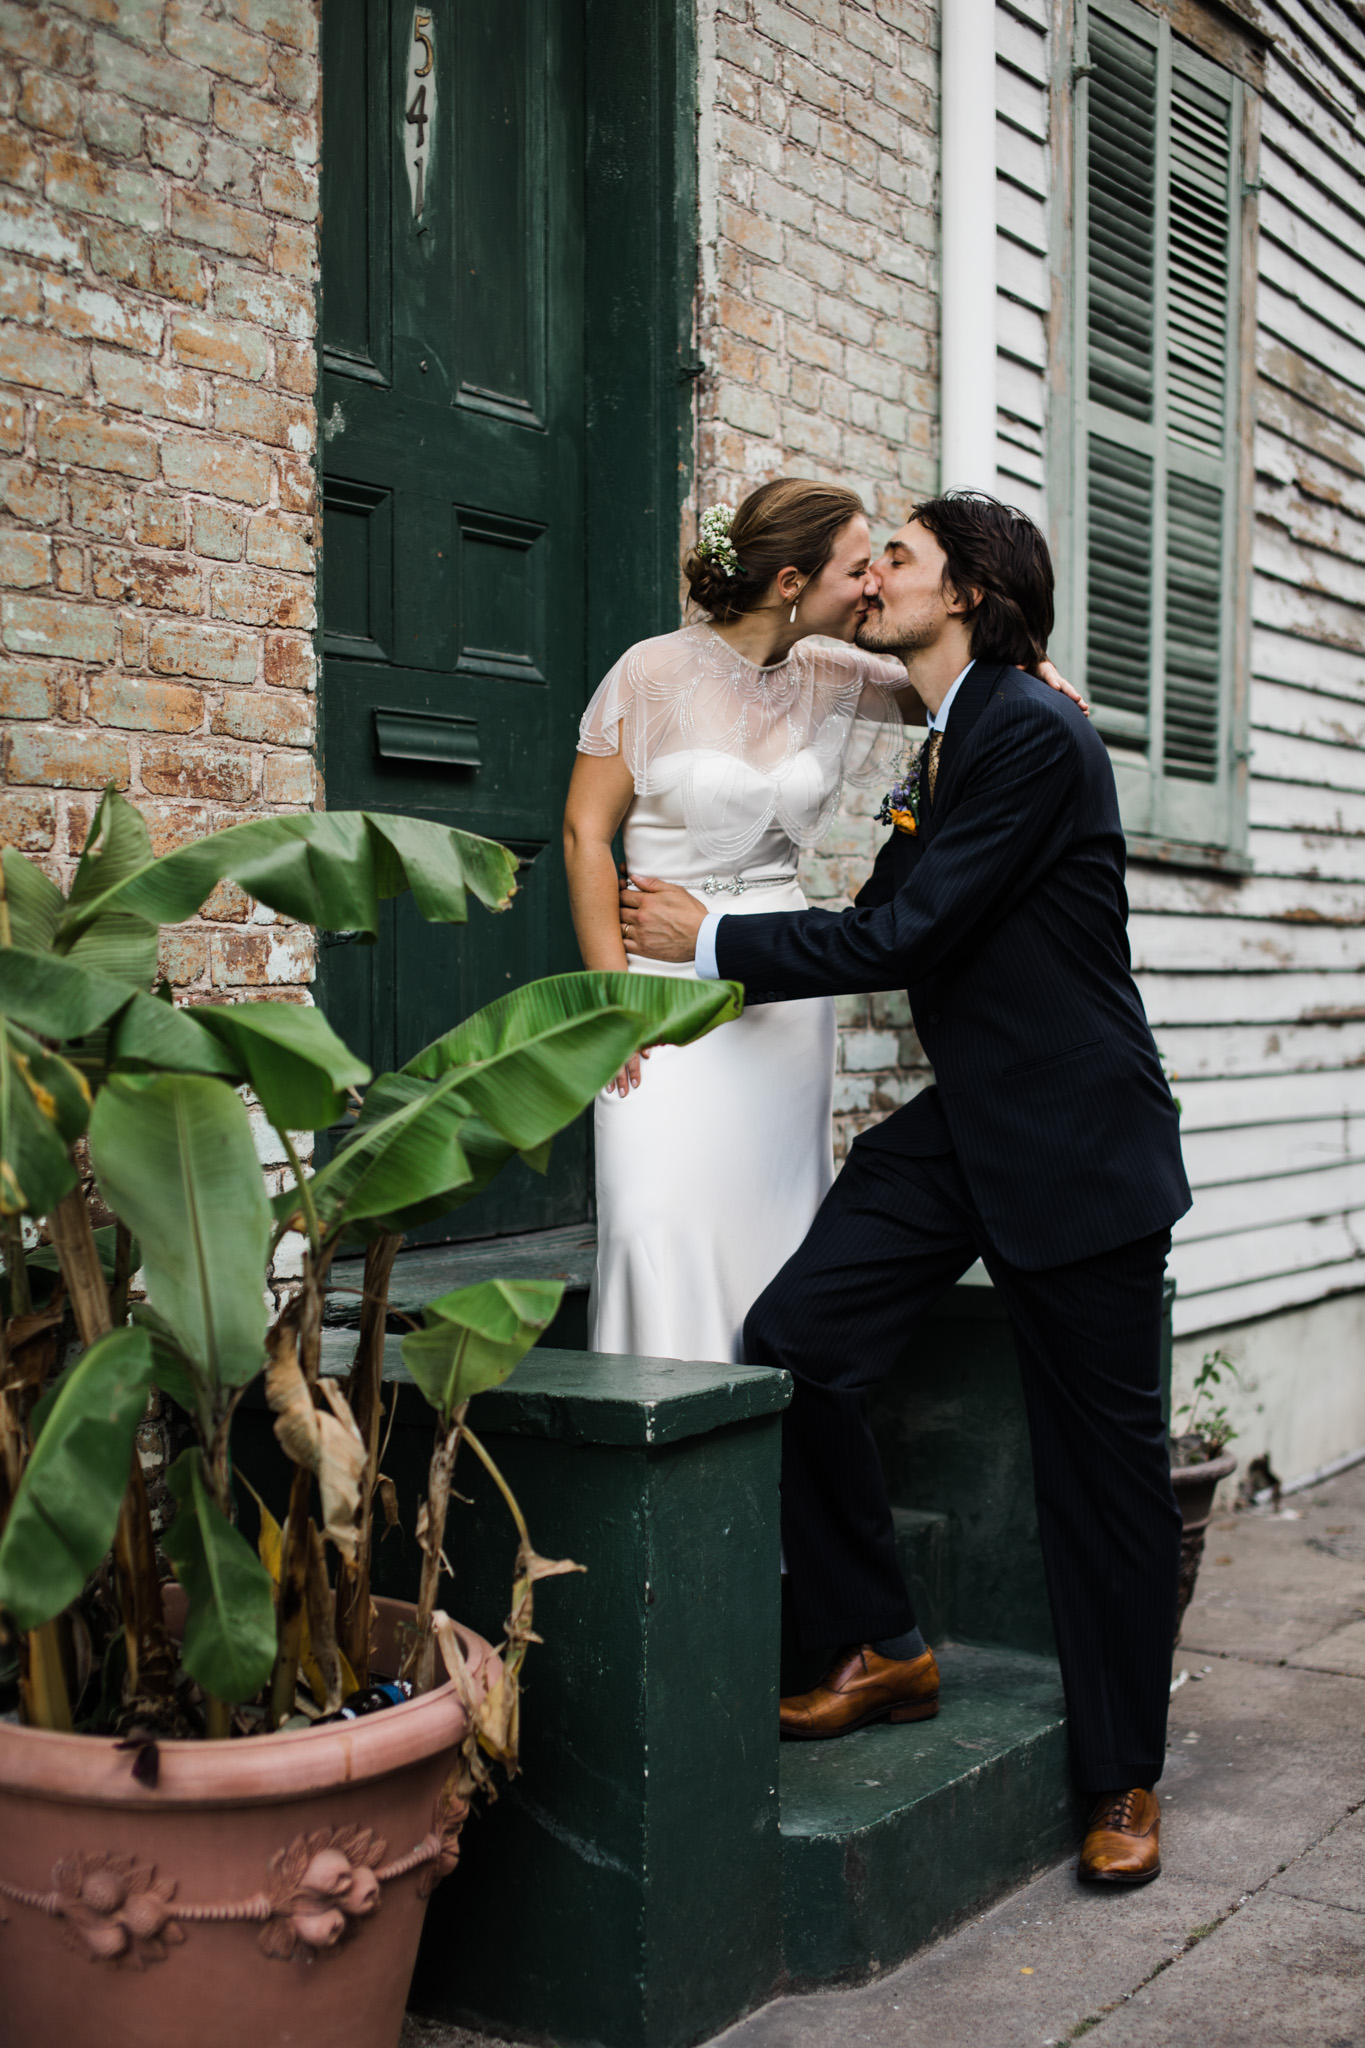 Leah&Jared-286.jpg